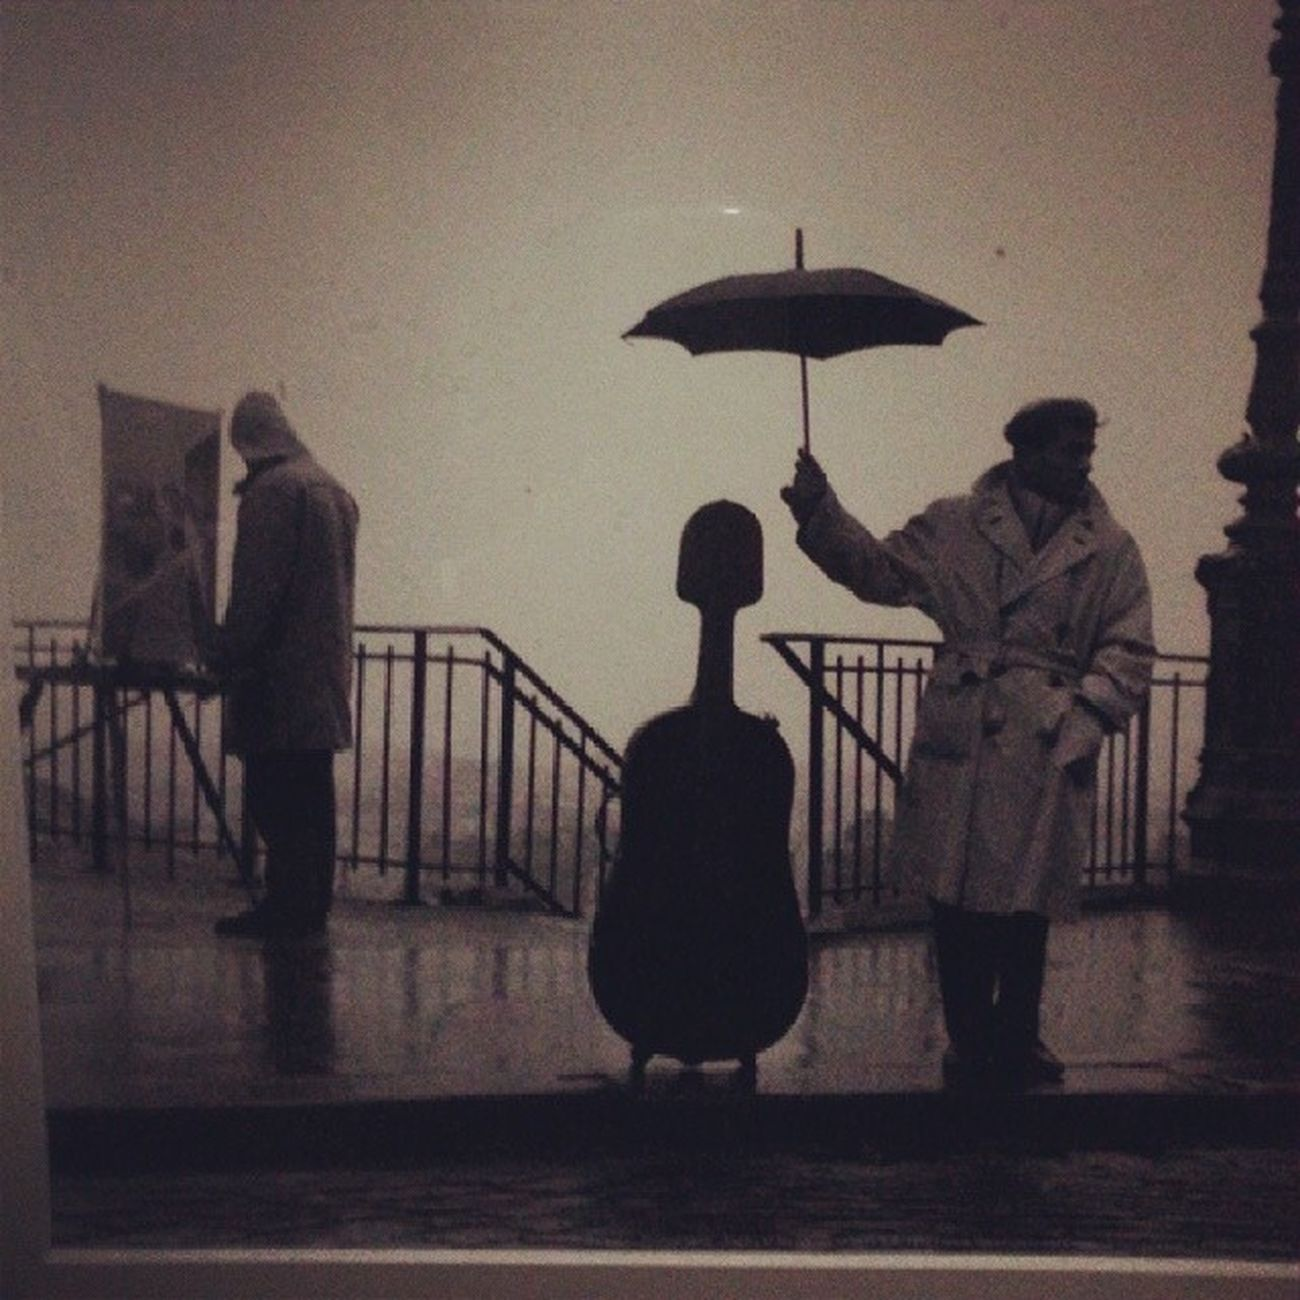 Artist Musicien Rain Umbrella bestfriends epic magnifique